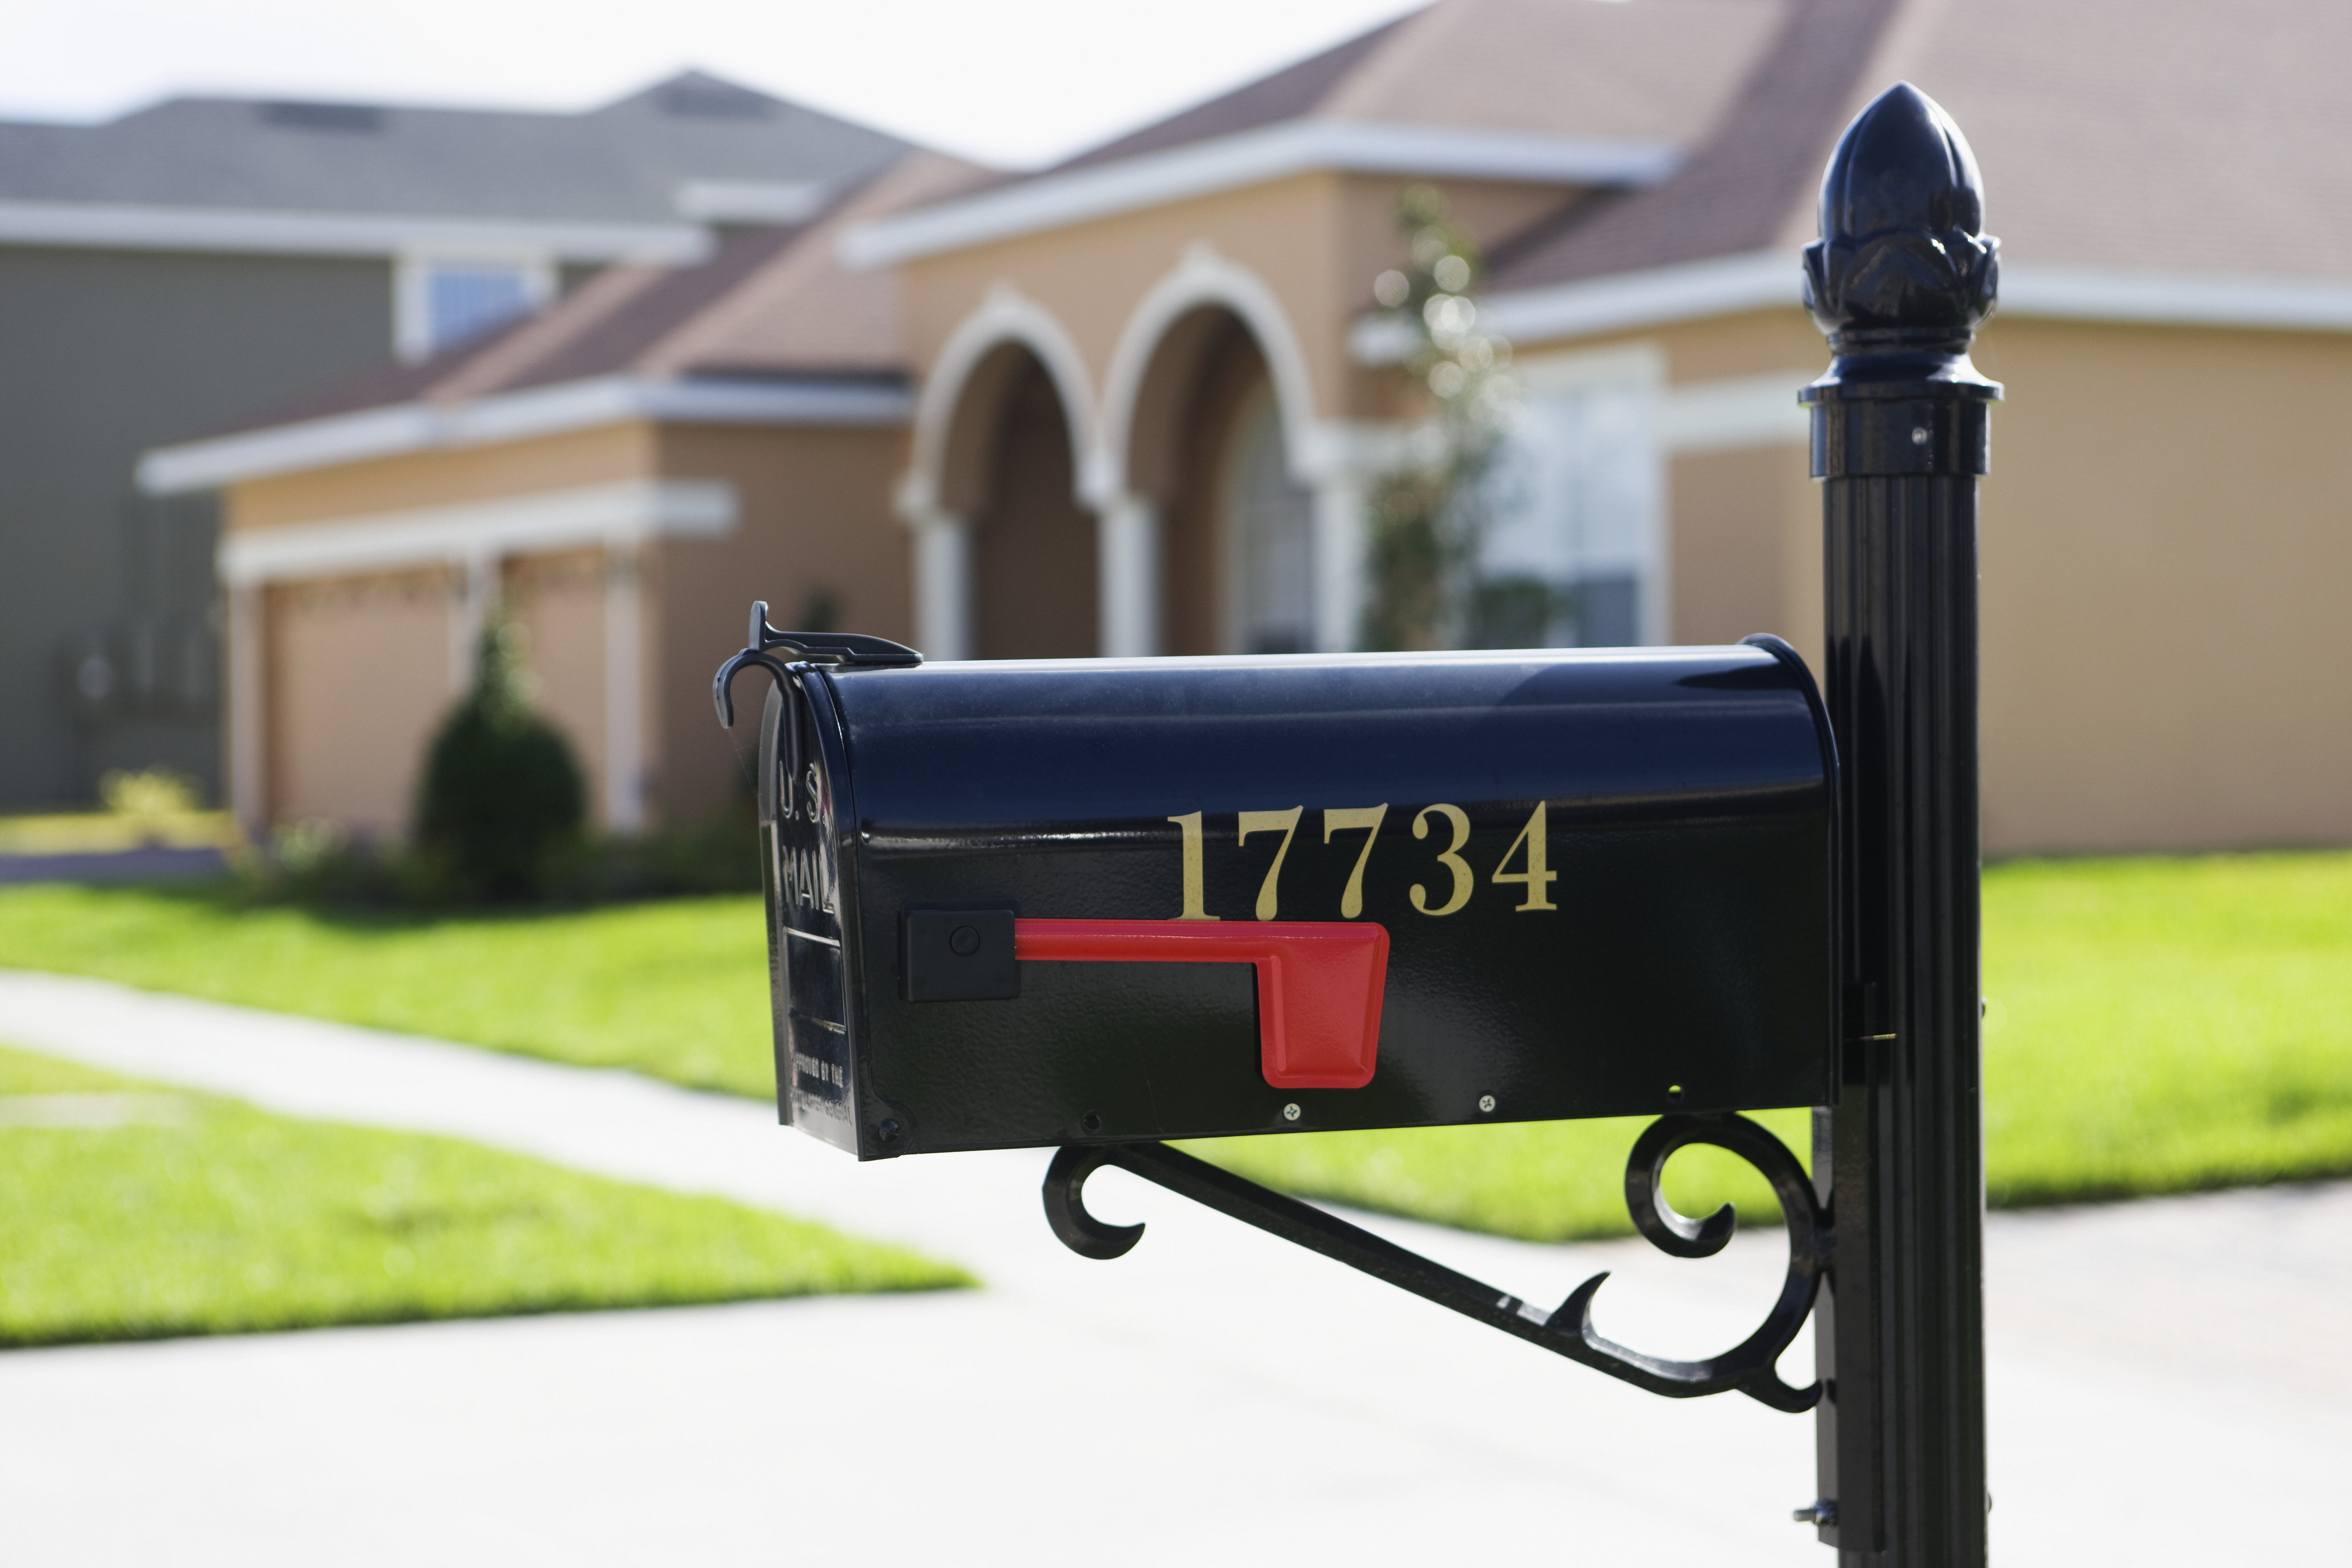 No mail for residents who lost mailboxes to car crash in May